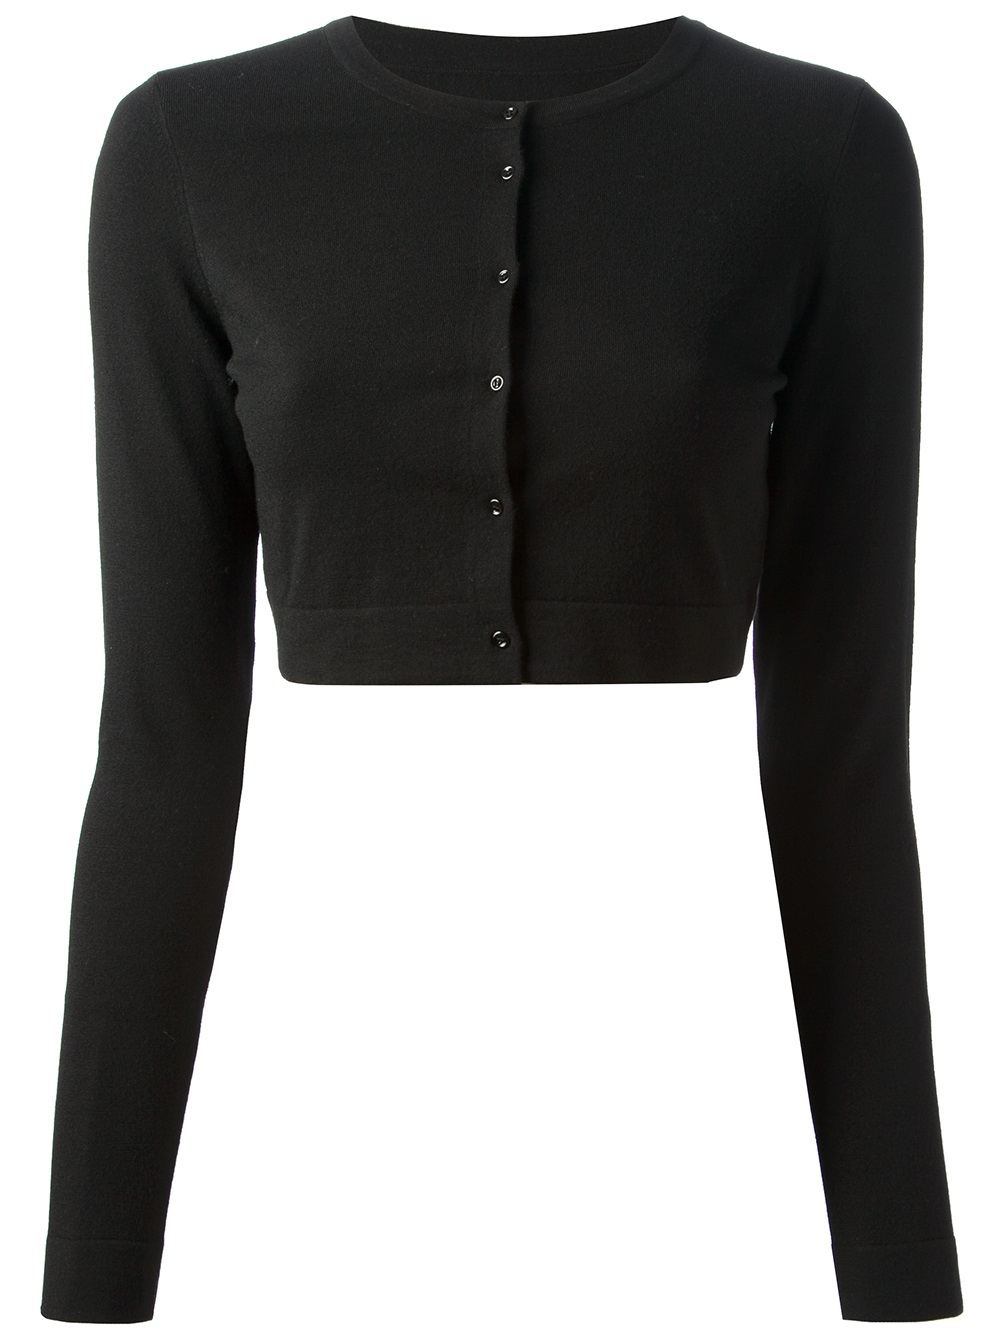 Alaïa Cropped Cardigan in Black | Lyst